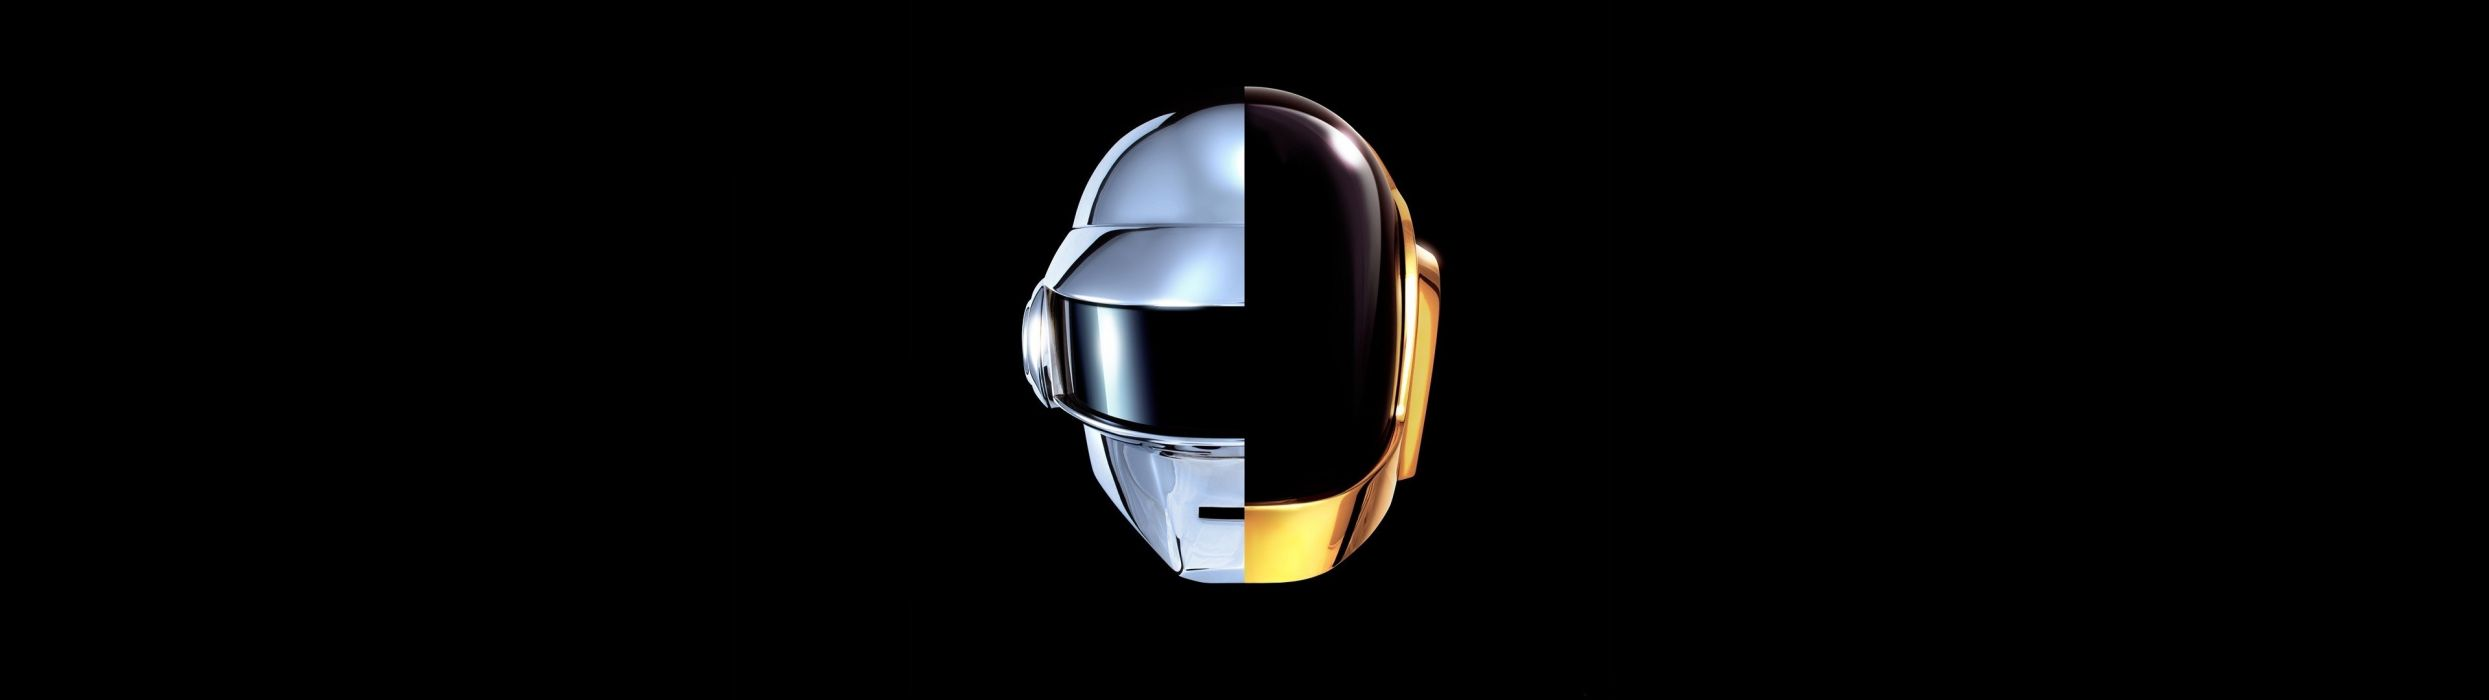 robots Daft Punk Thomas Bangalter guy manuel de homem christo wallpaper